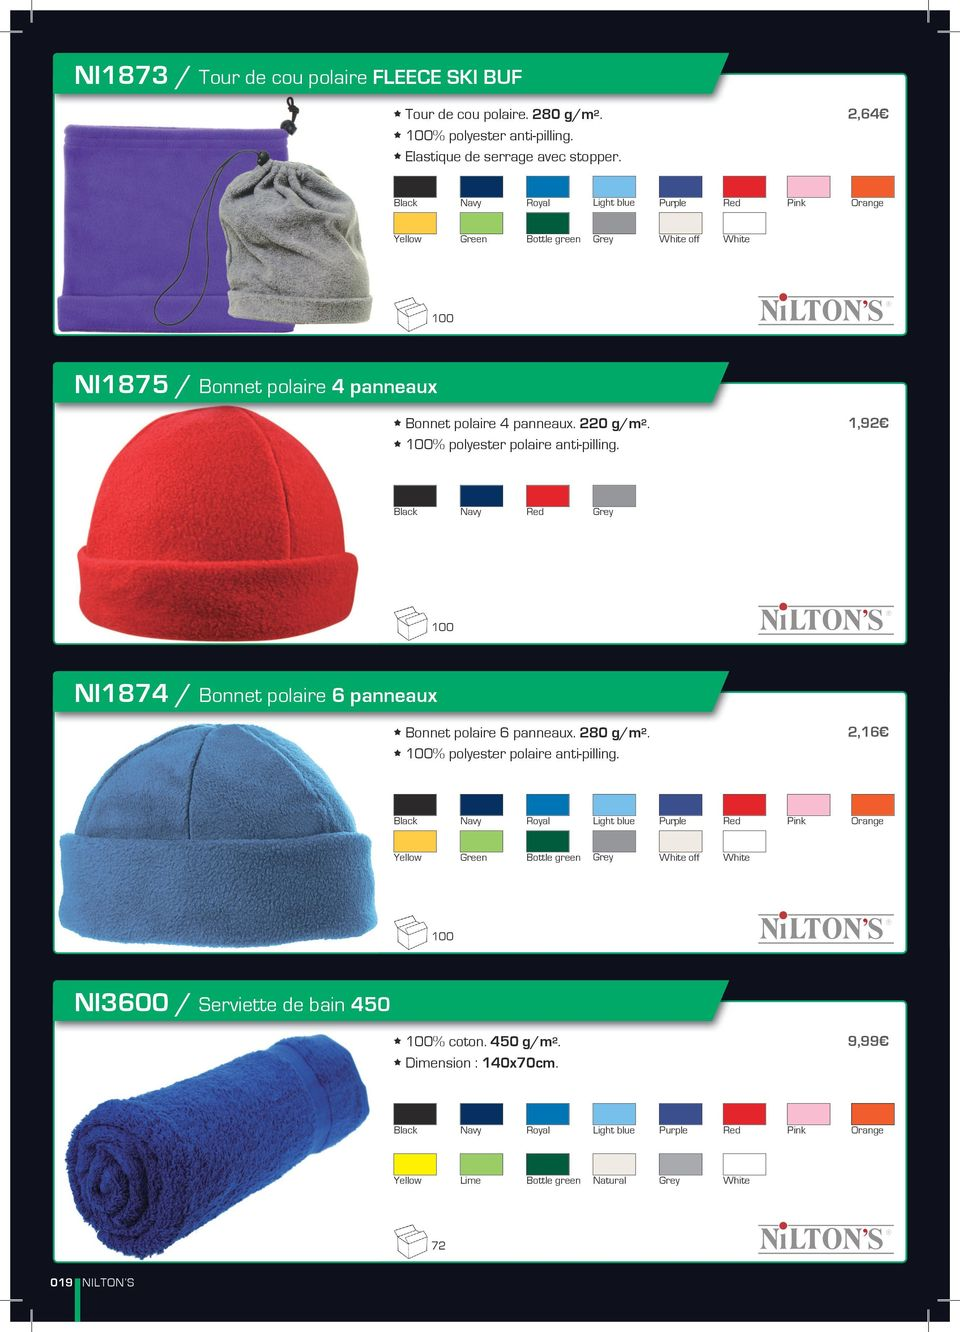 * % polyester polaire anti-pilling. 1,92 Black Navy Red Grey NI1874 / Bonnet polaire 6 panneaux * Bonnet polaire 6 panneaux. 280 g/m 2. * % polyester polaire anti-pilling.